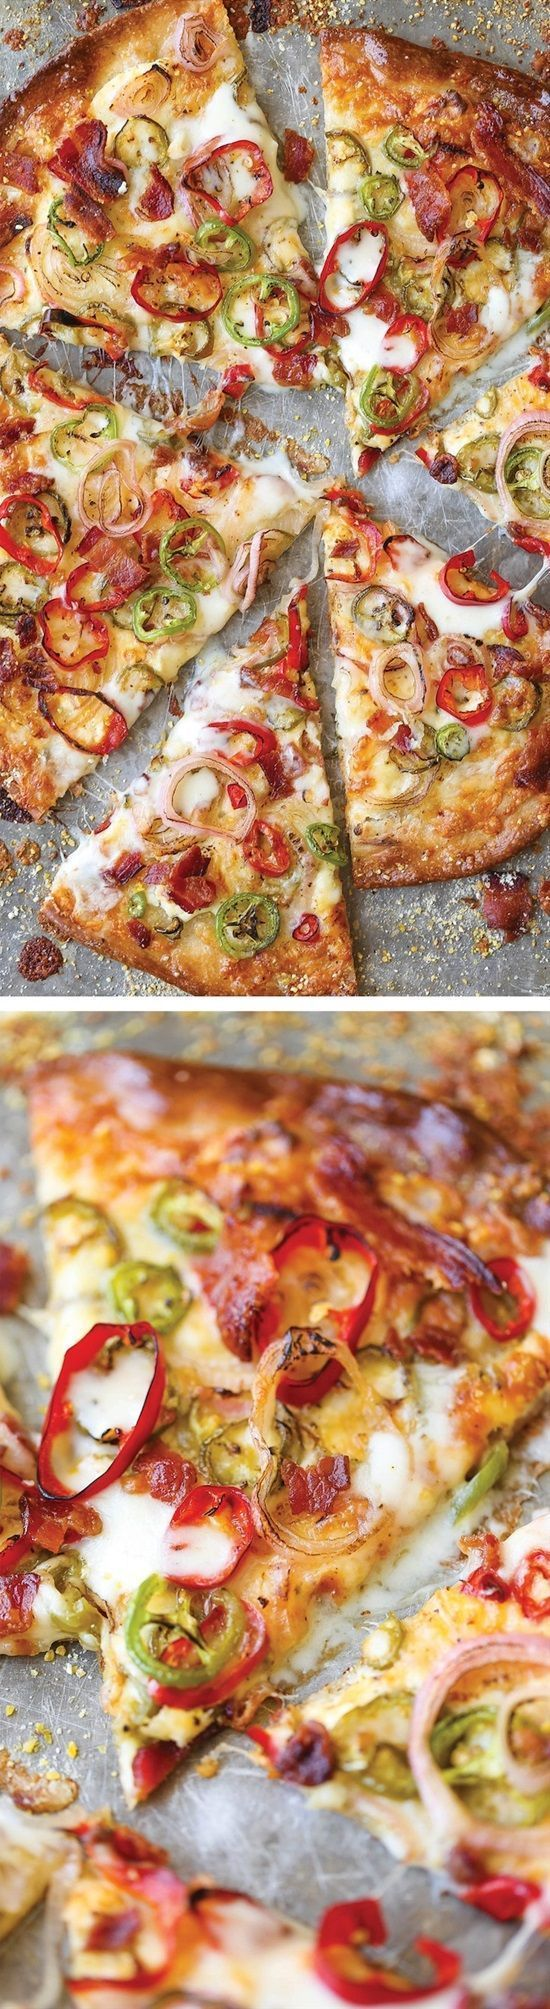 Don't you just love pizza? Then you would definitely enjoy making your pizza at home, and the feeling of eating that fresh out of the oven pizza is simply irresistible. Here are some of the best pizza recipes you must try at home.